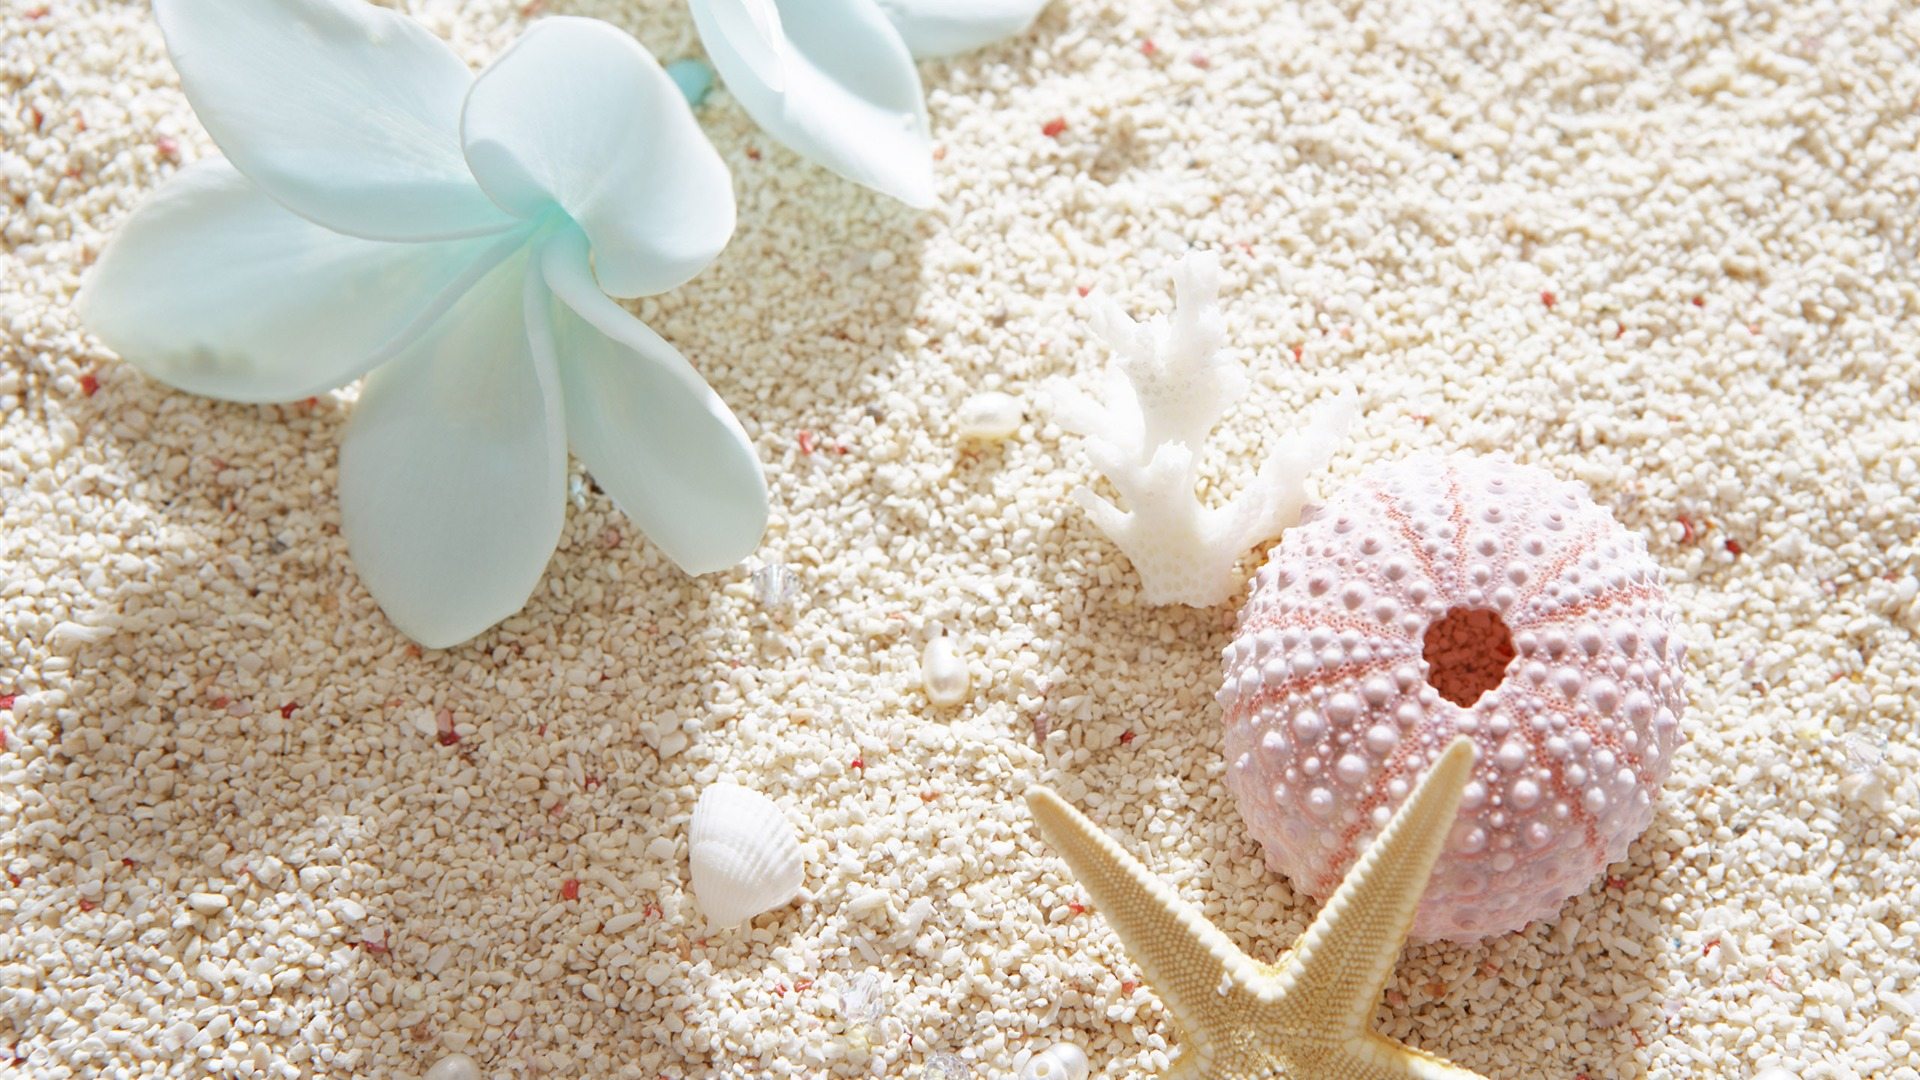 Seashell HD Wallpaper